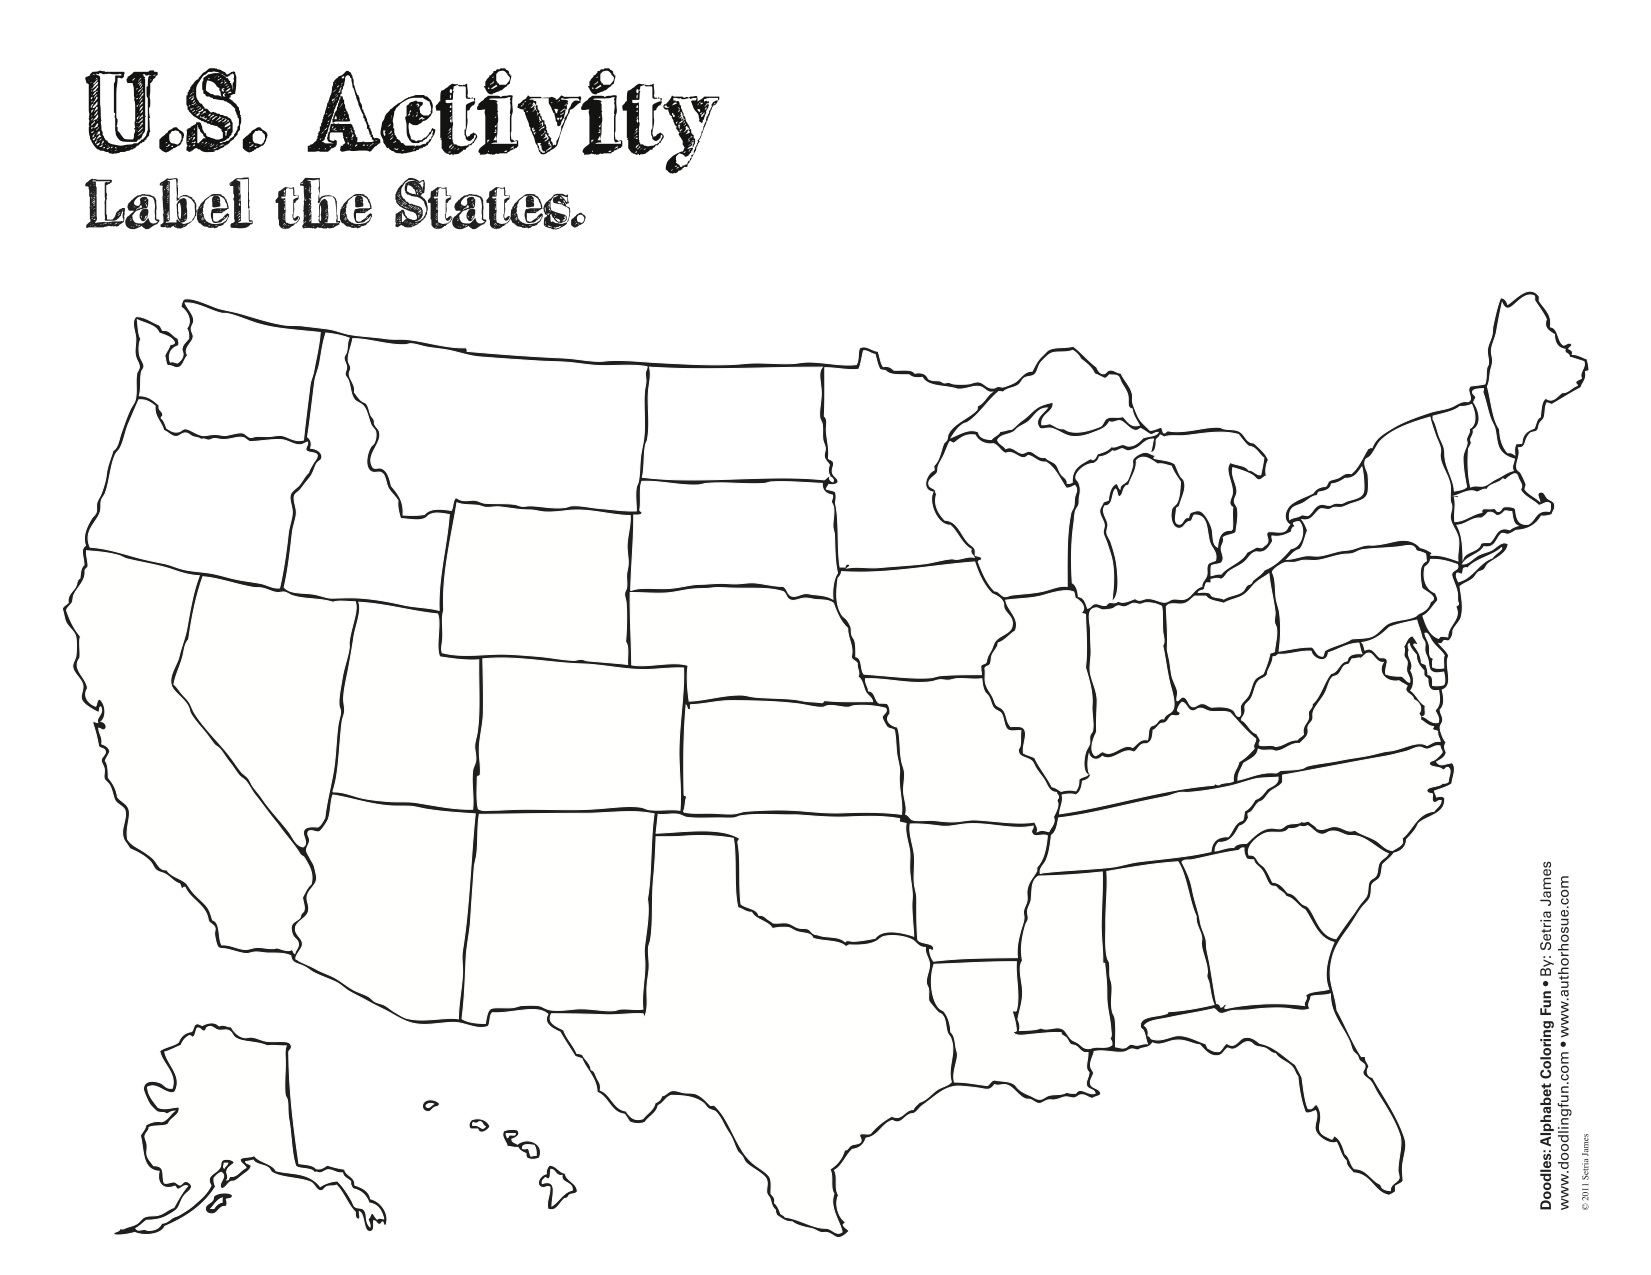 USA Blank Map Blank States Map Dr Odd Blank Usa Map Test Usa Get - Us states and capitals map printable